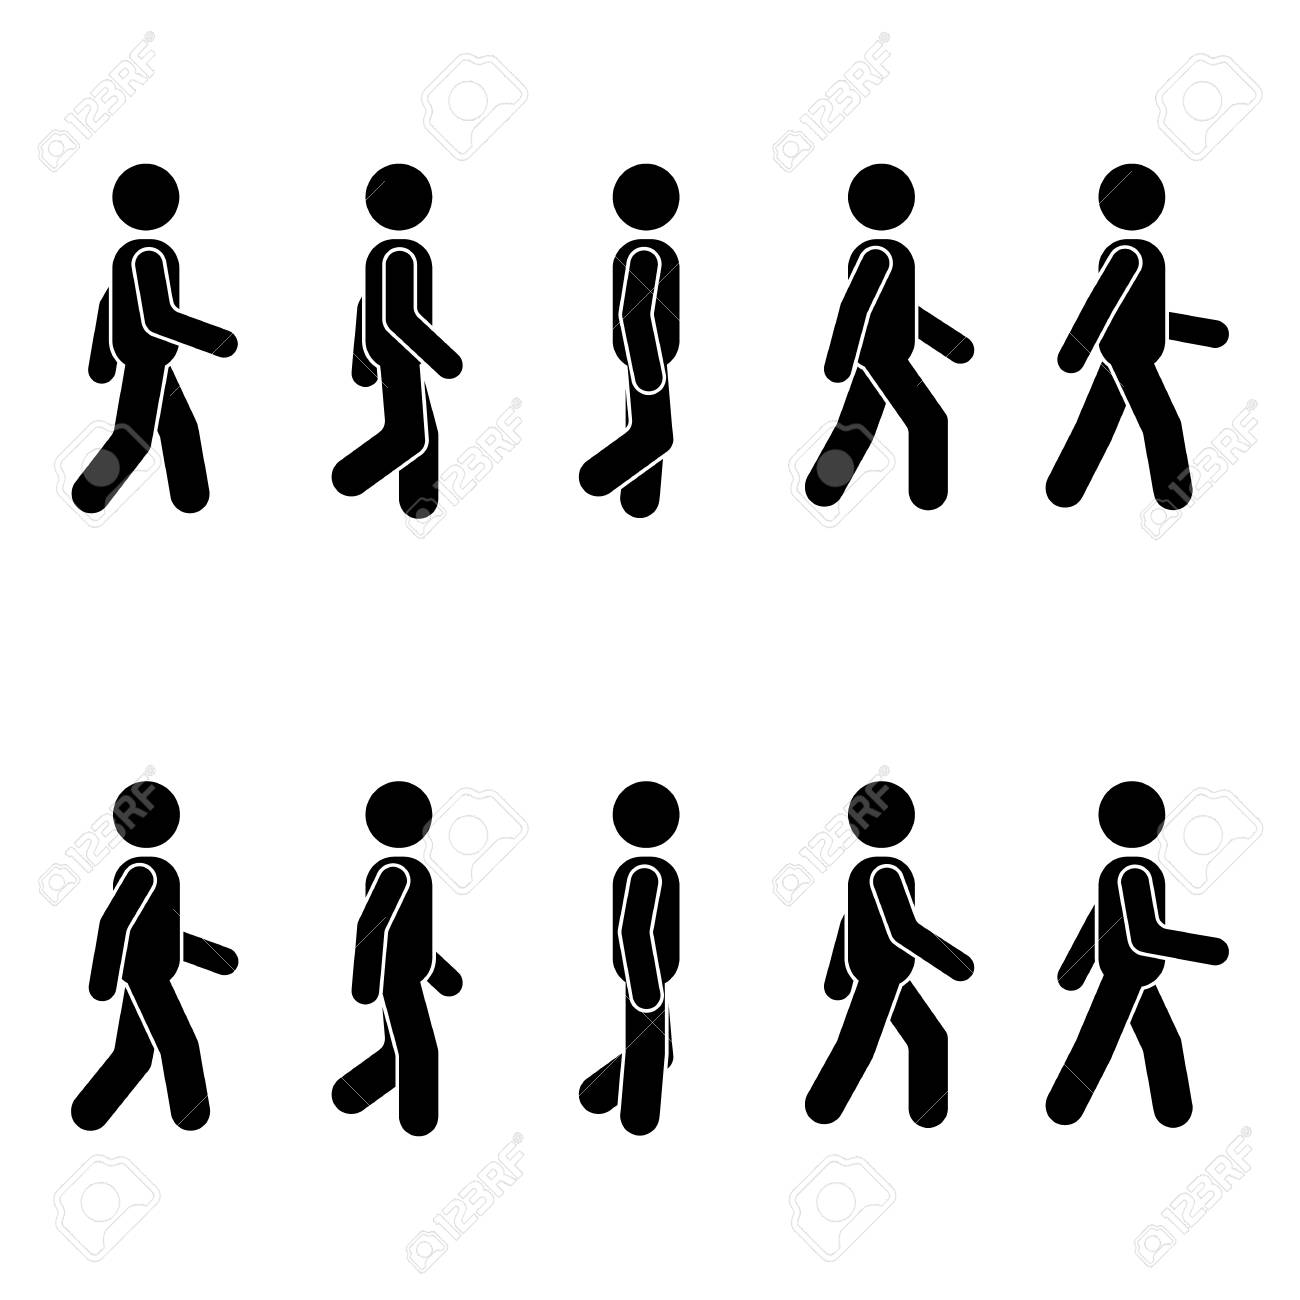 Man people various walking position. Posture stick figure. Vector standing person icon symbol sign pictogram on white - 85329308